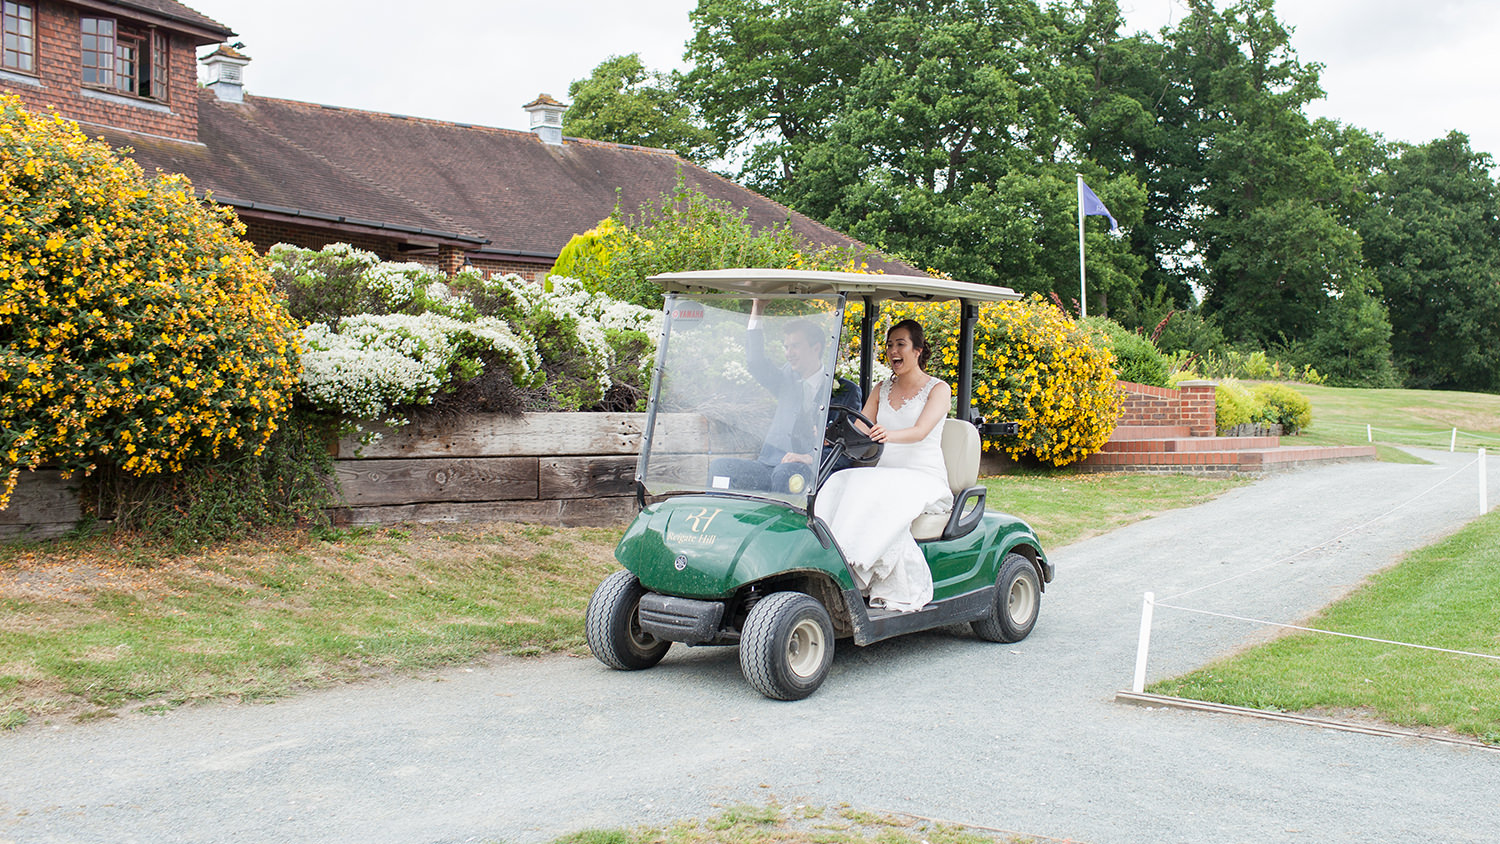 Lark on your golf kart to make it a perfect wedding day.